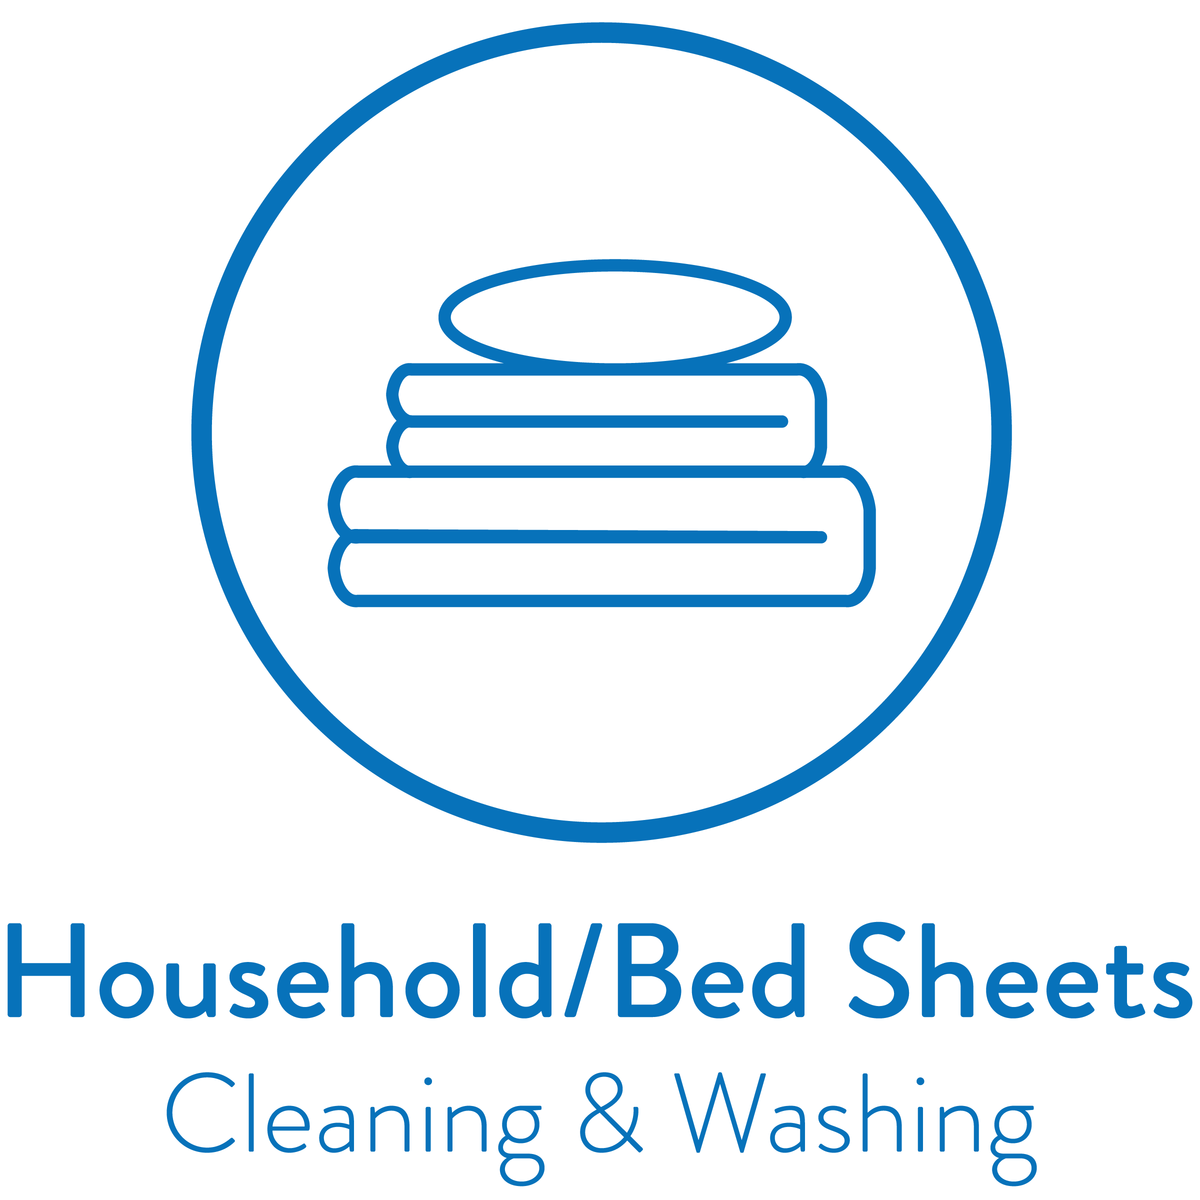 Household/Bed Sheets